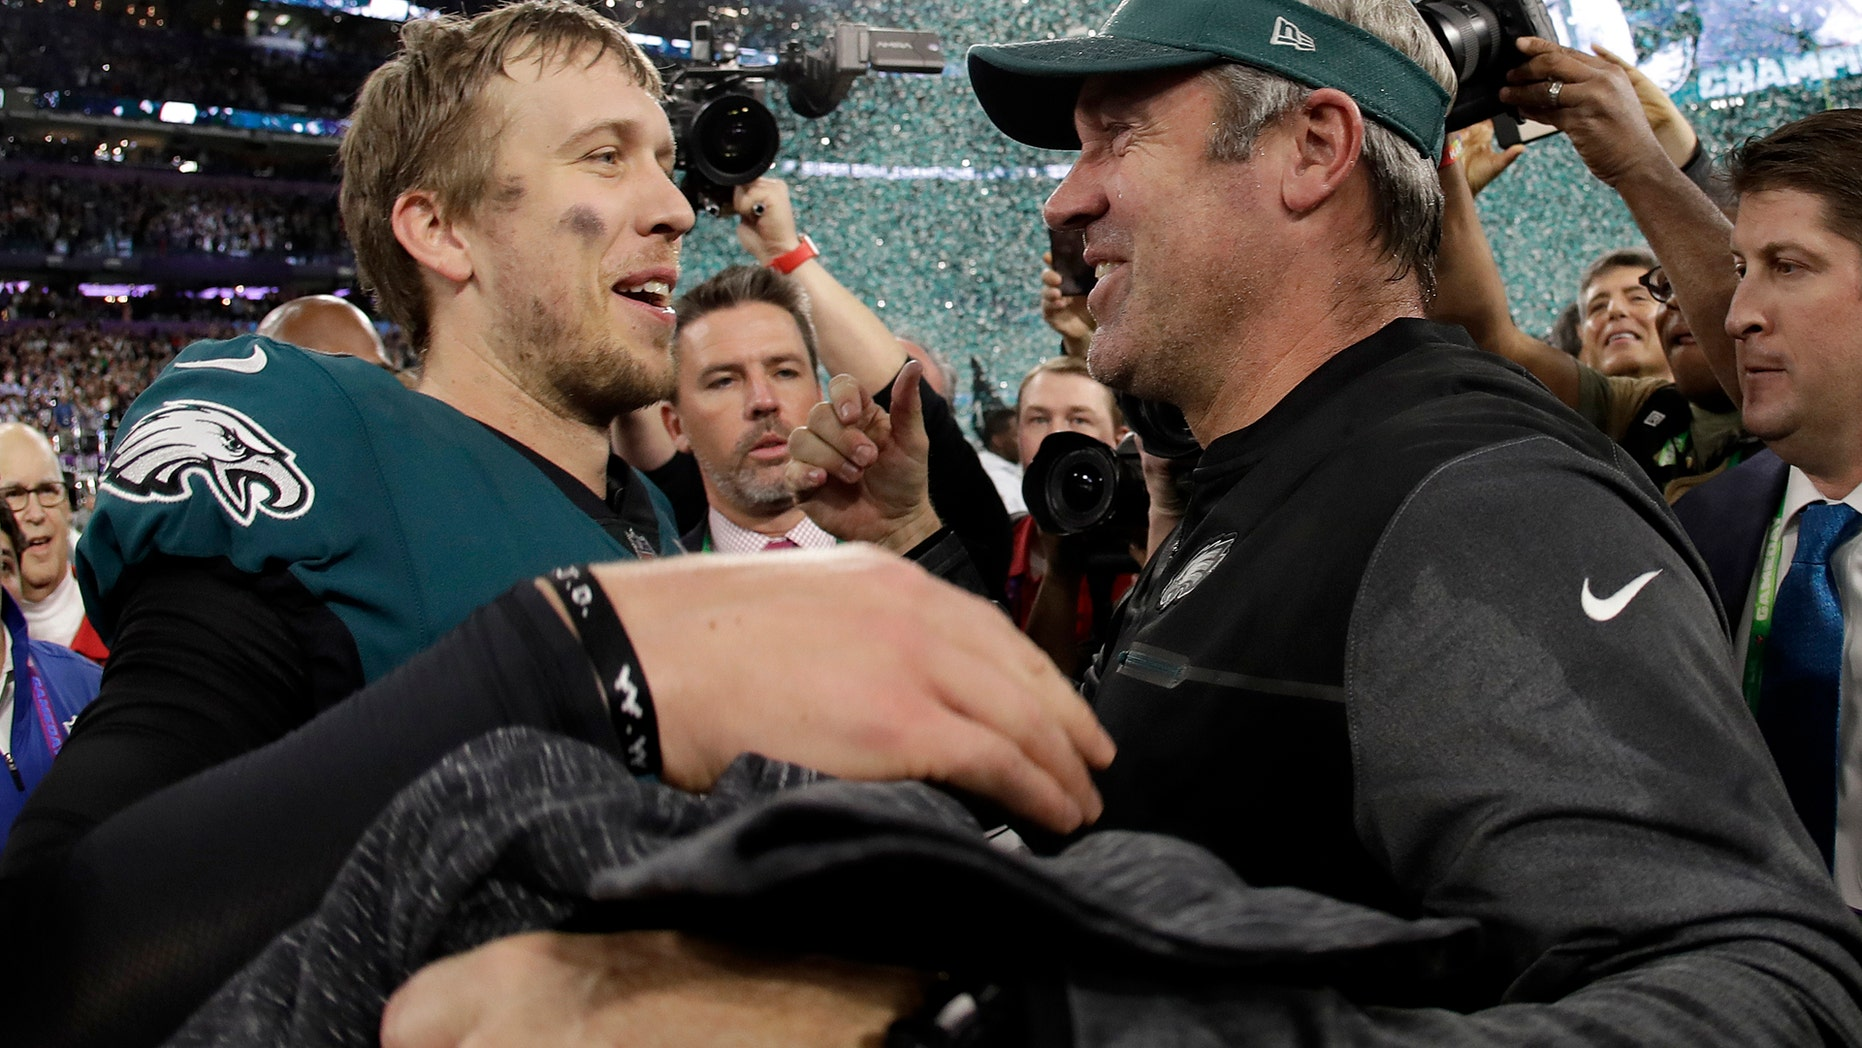 Philadelphia Eagles' Nick Foles, left, celebrates with head coach Doug Pederson after the NFL Super Bowl 52 football game against the New England Patriots Sunday, Feb. 4, 2018, in Minneapolis. The Eagles won 41-33. (AP Photo/Matt Slocum)